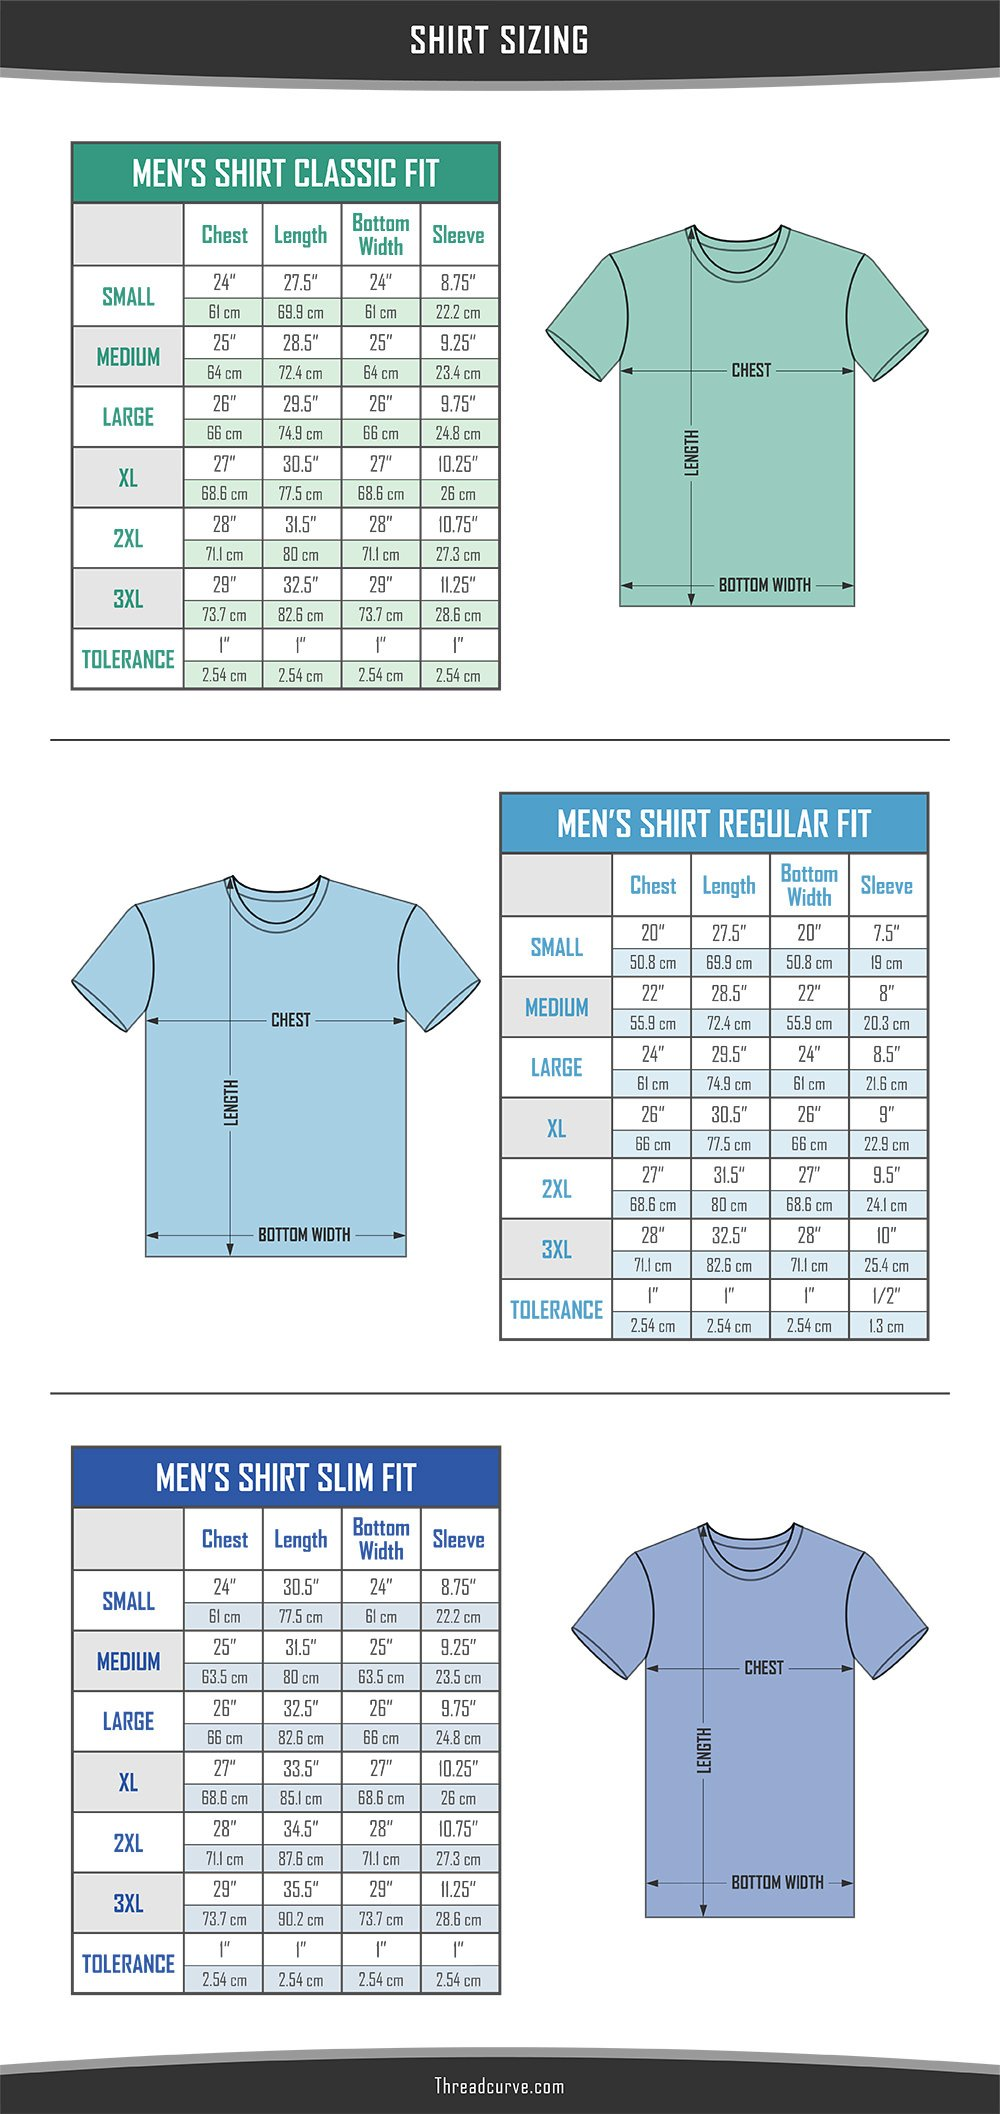 Men's charts for different t-shirt sizes